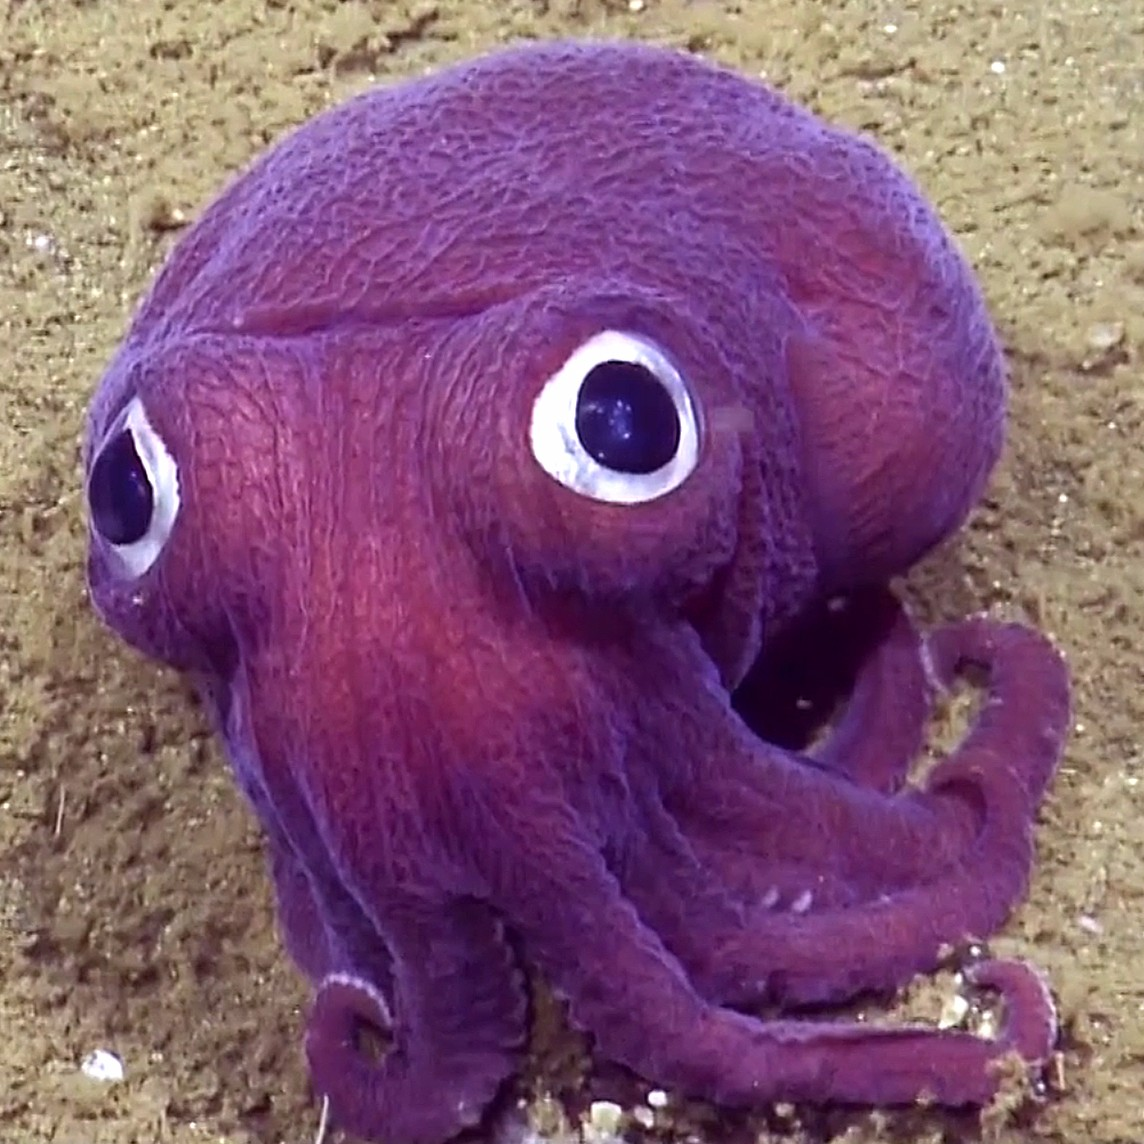 T6keqigdsuowlfx9mb4t_this_googly-eyed_squid_gives_sober_scientists_the_giggles_-_today